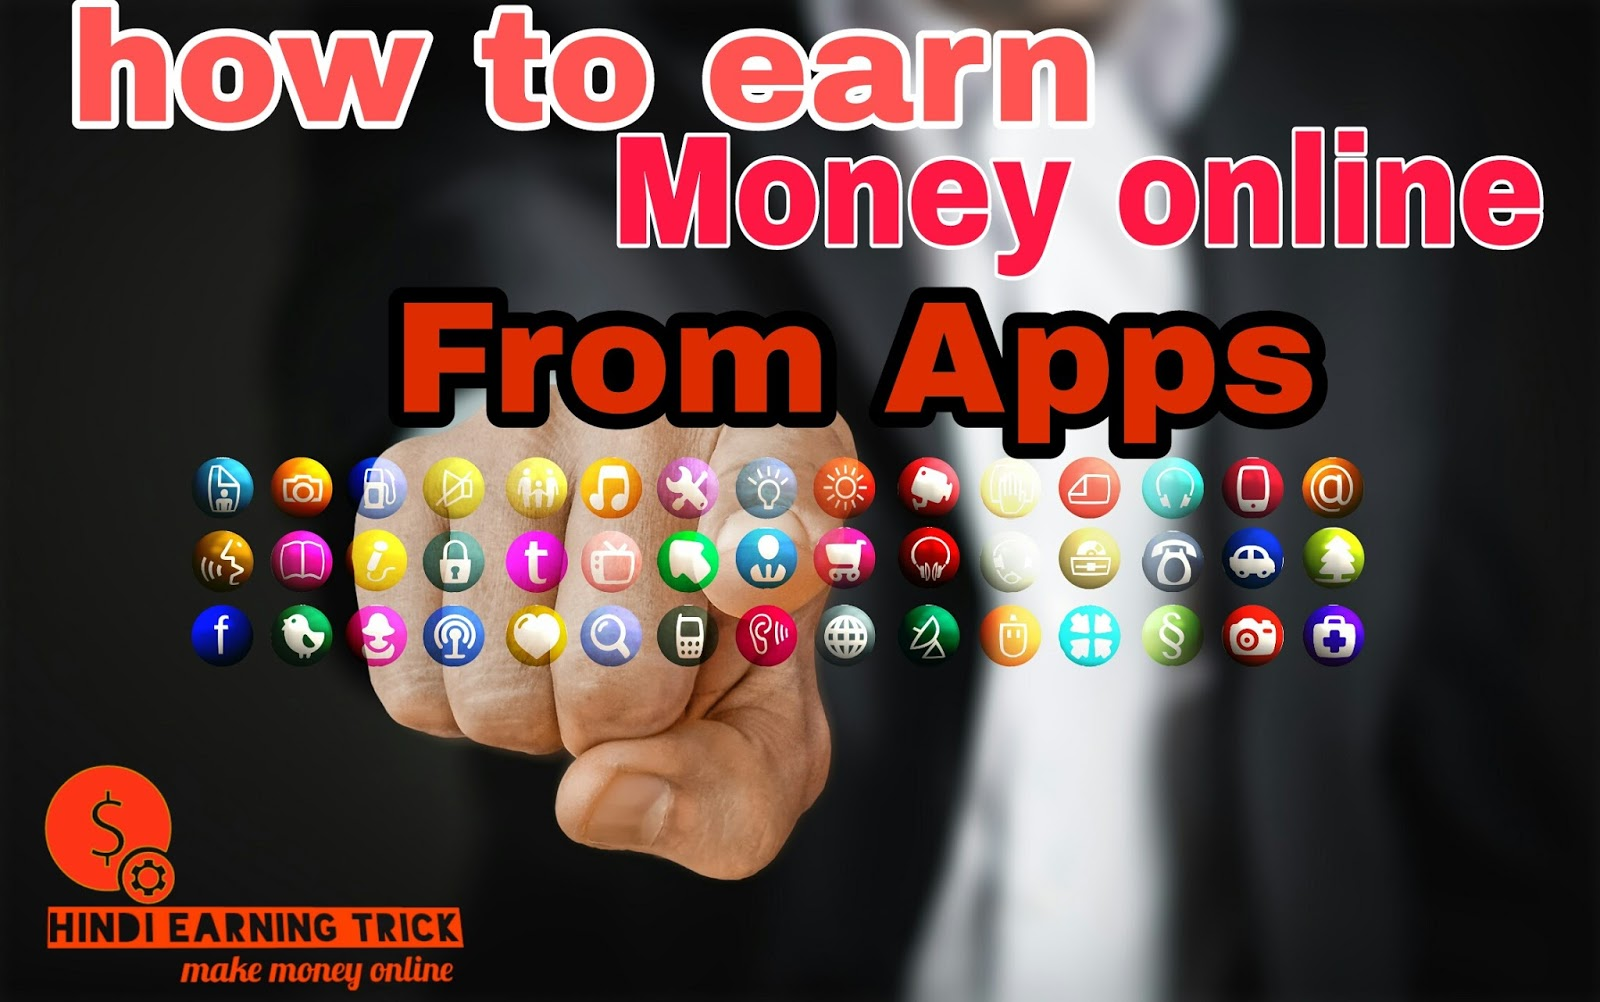 Mobile se paise Kmane wale best apps - Hindi Earning Trick